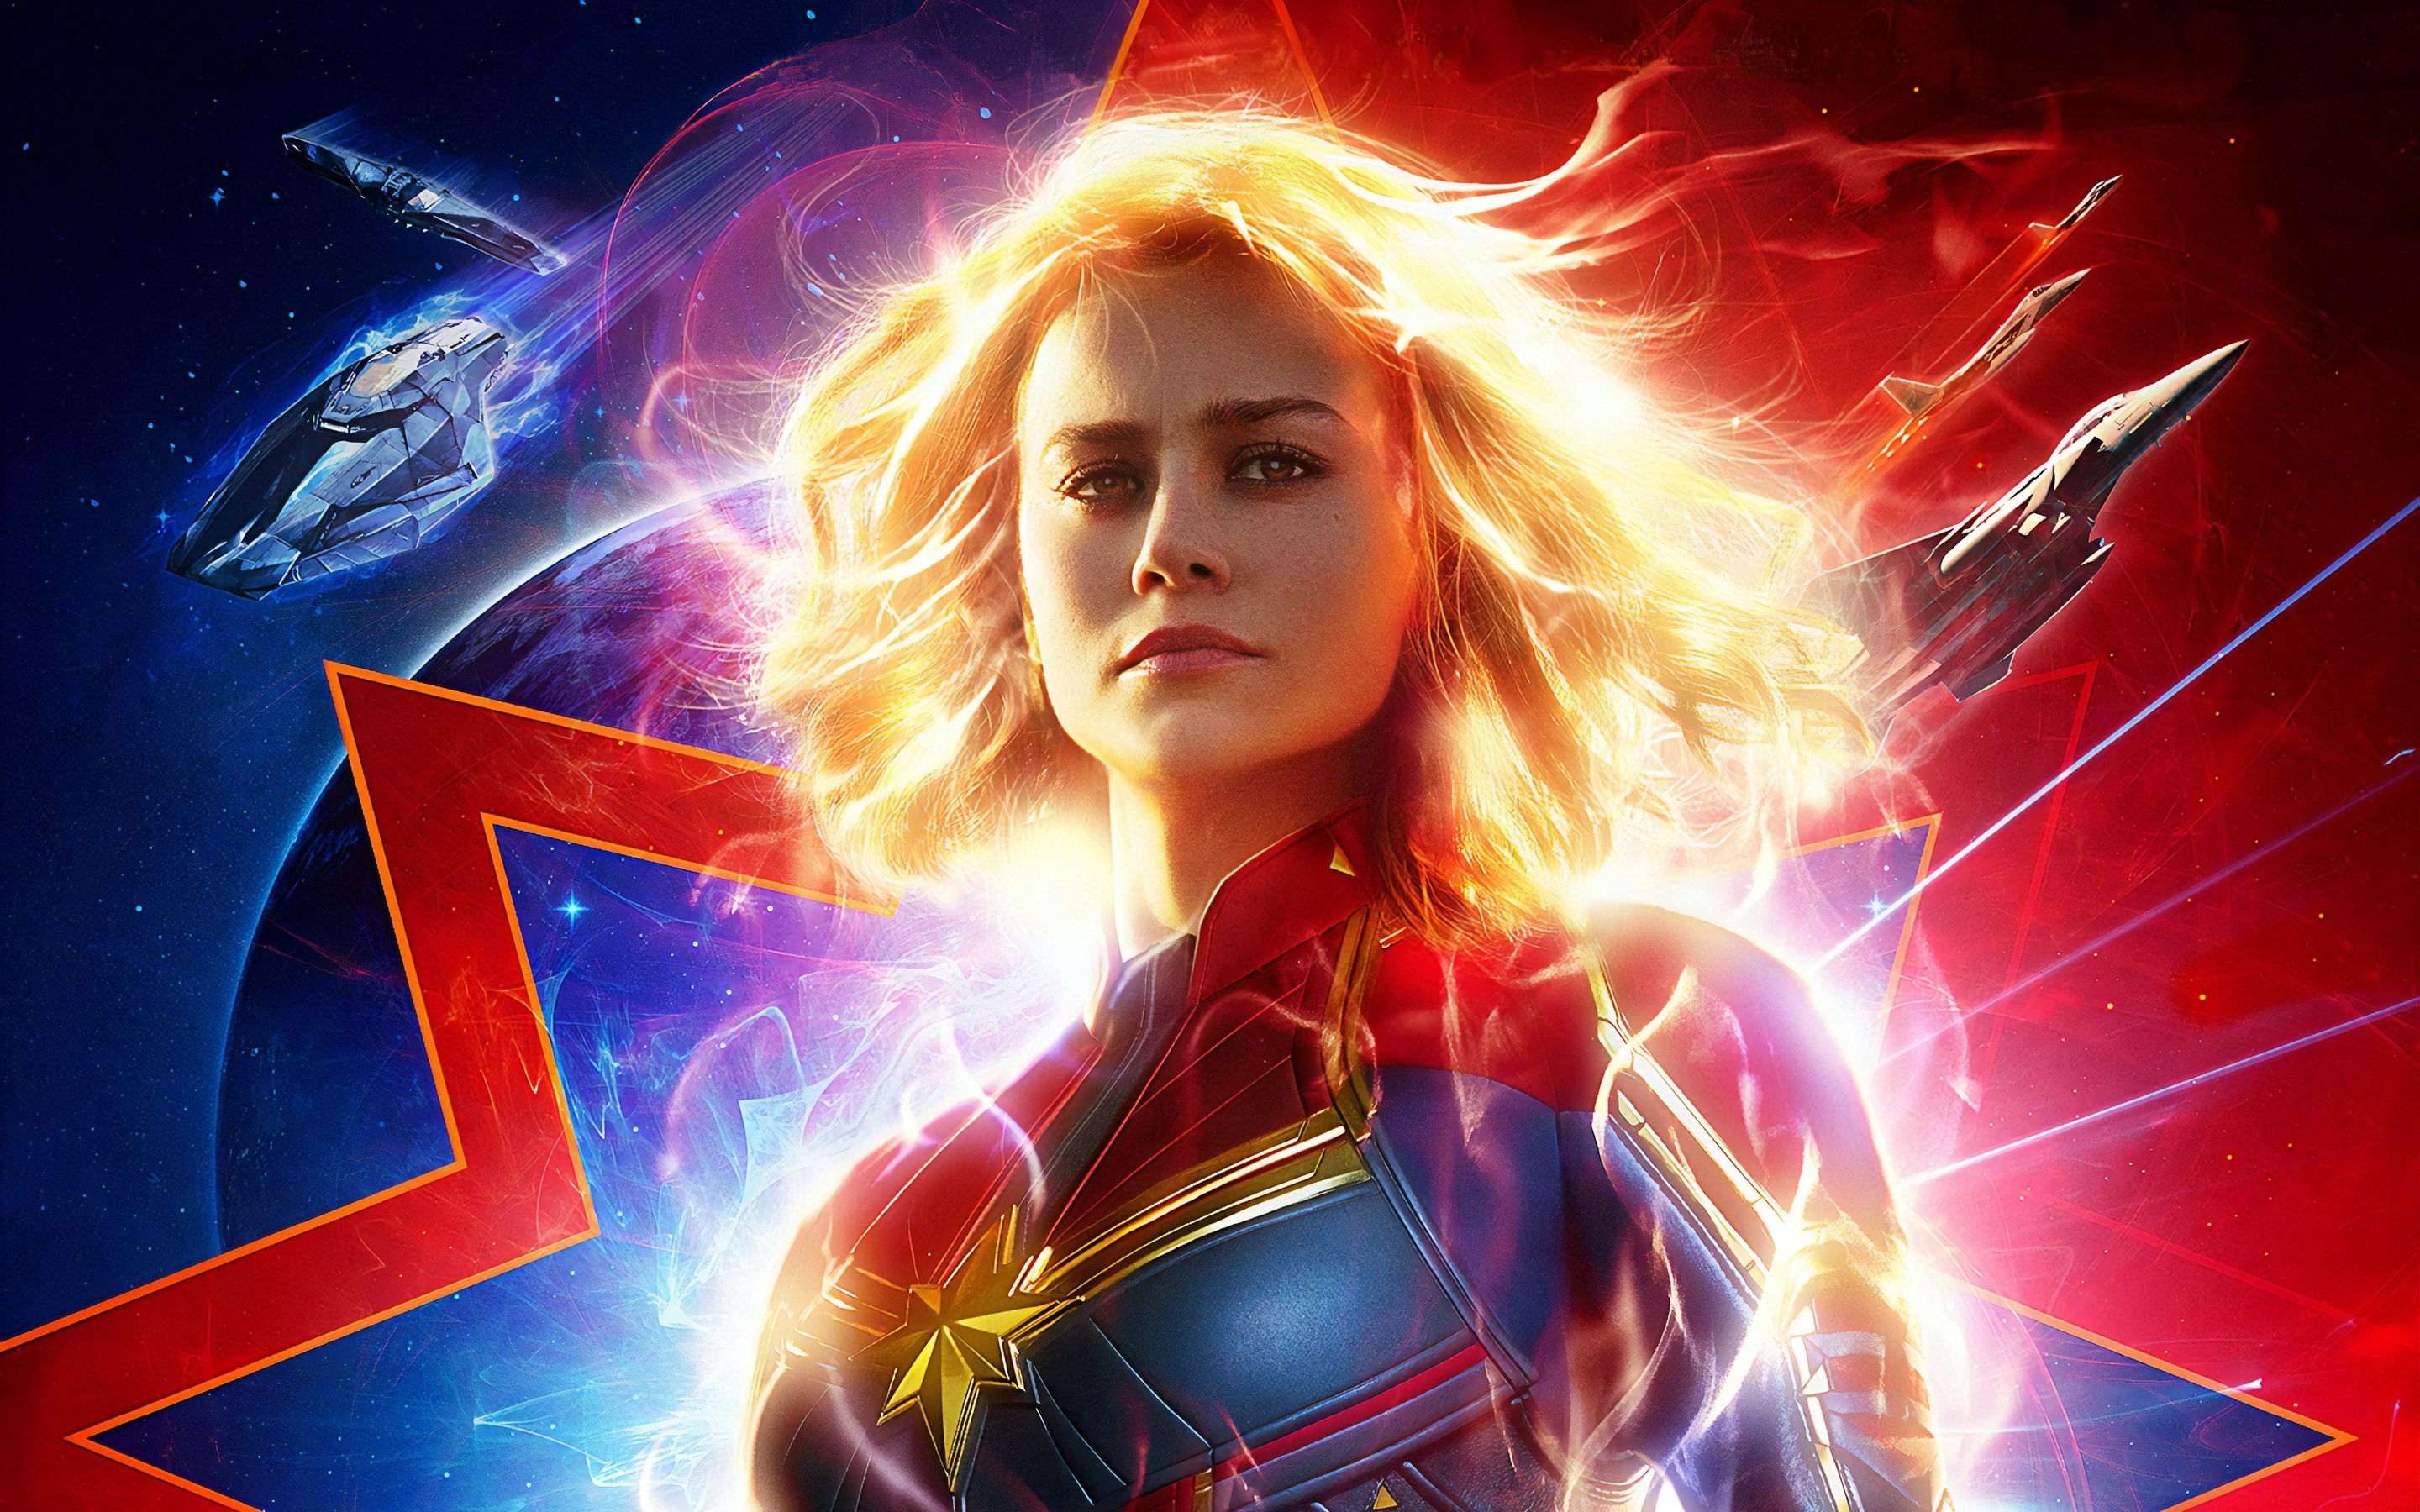 Movie Poster 2019: Wallpaper Captain Marvel 2019 5120x2880 UHD 5K Picture, Image